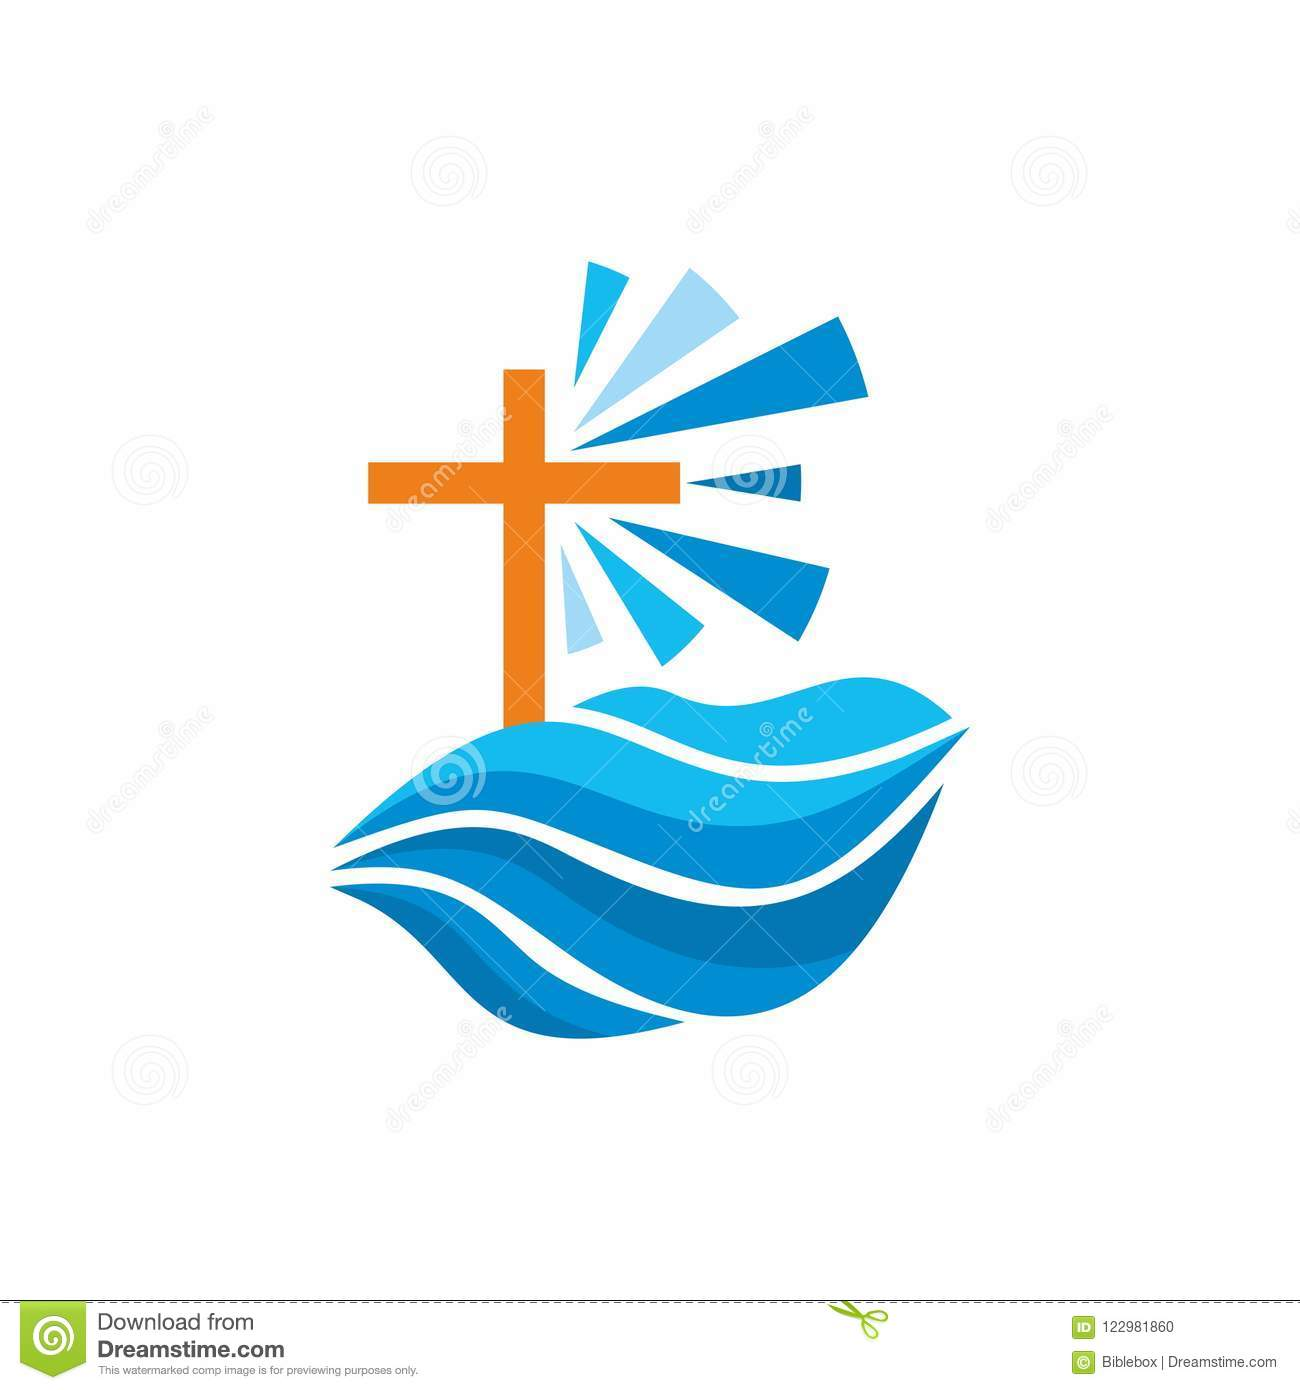 Logo Church Christian Symbols Waves Cross Streams Of Water Alive